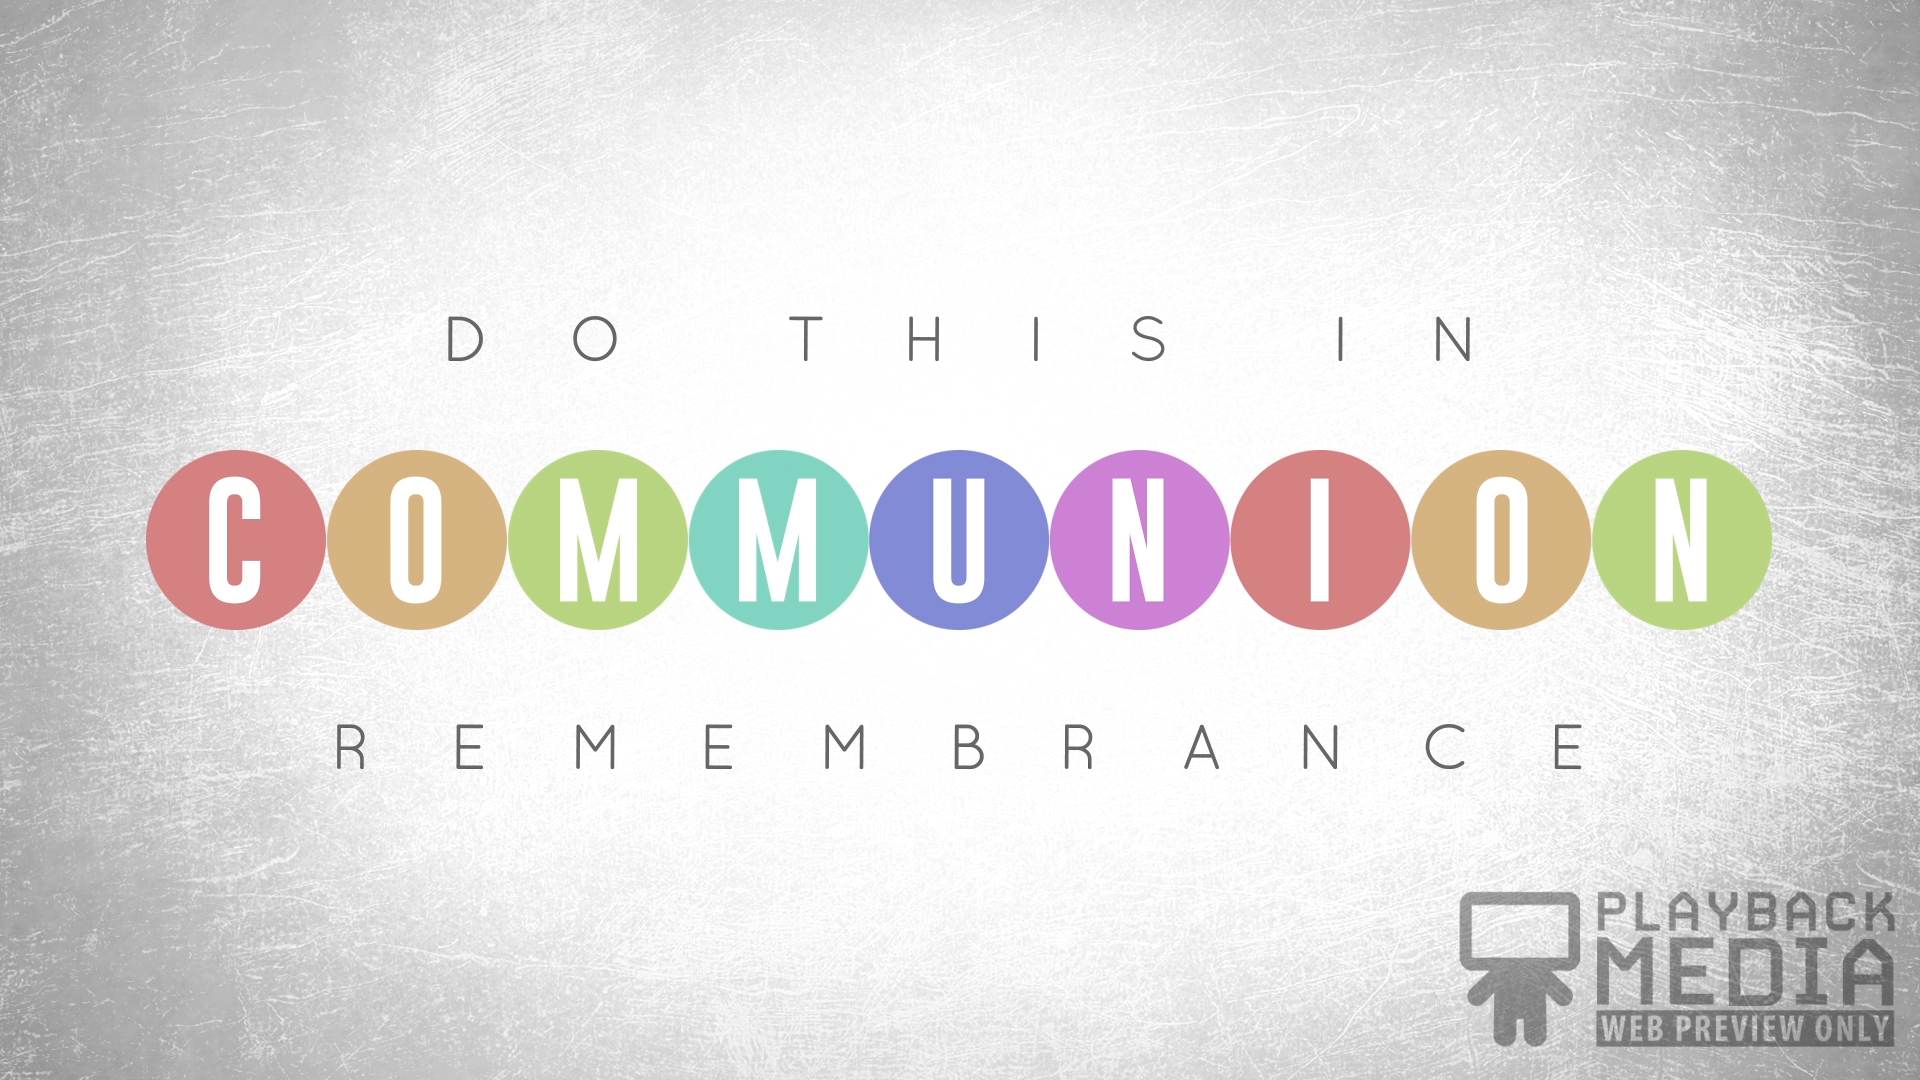 Event Planner Communion Motion Image